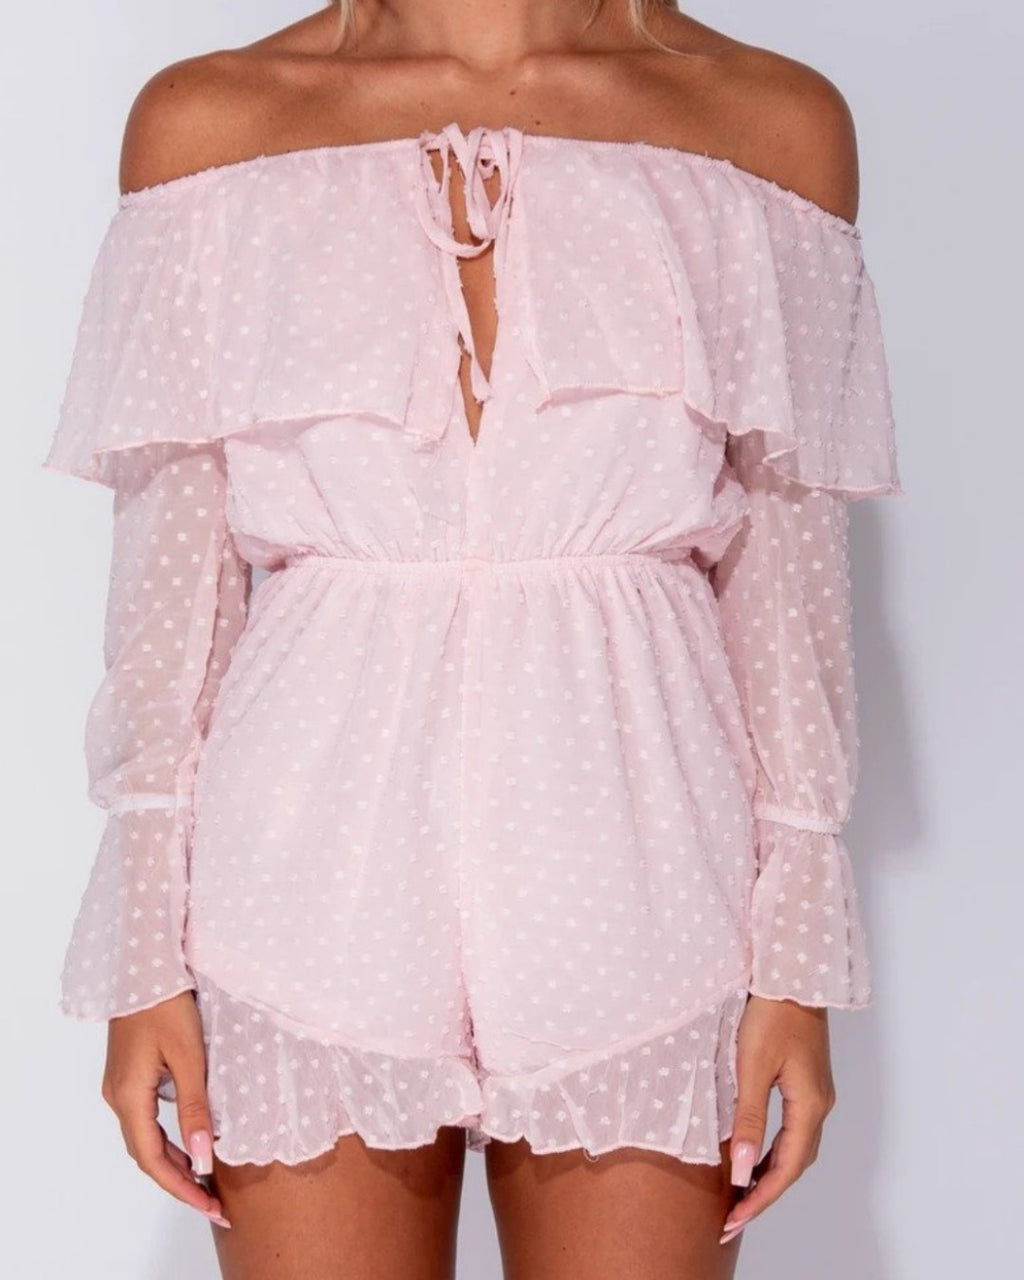 Cocktail Hour Pink Playsuit